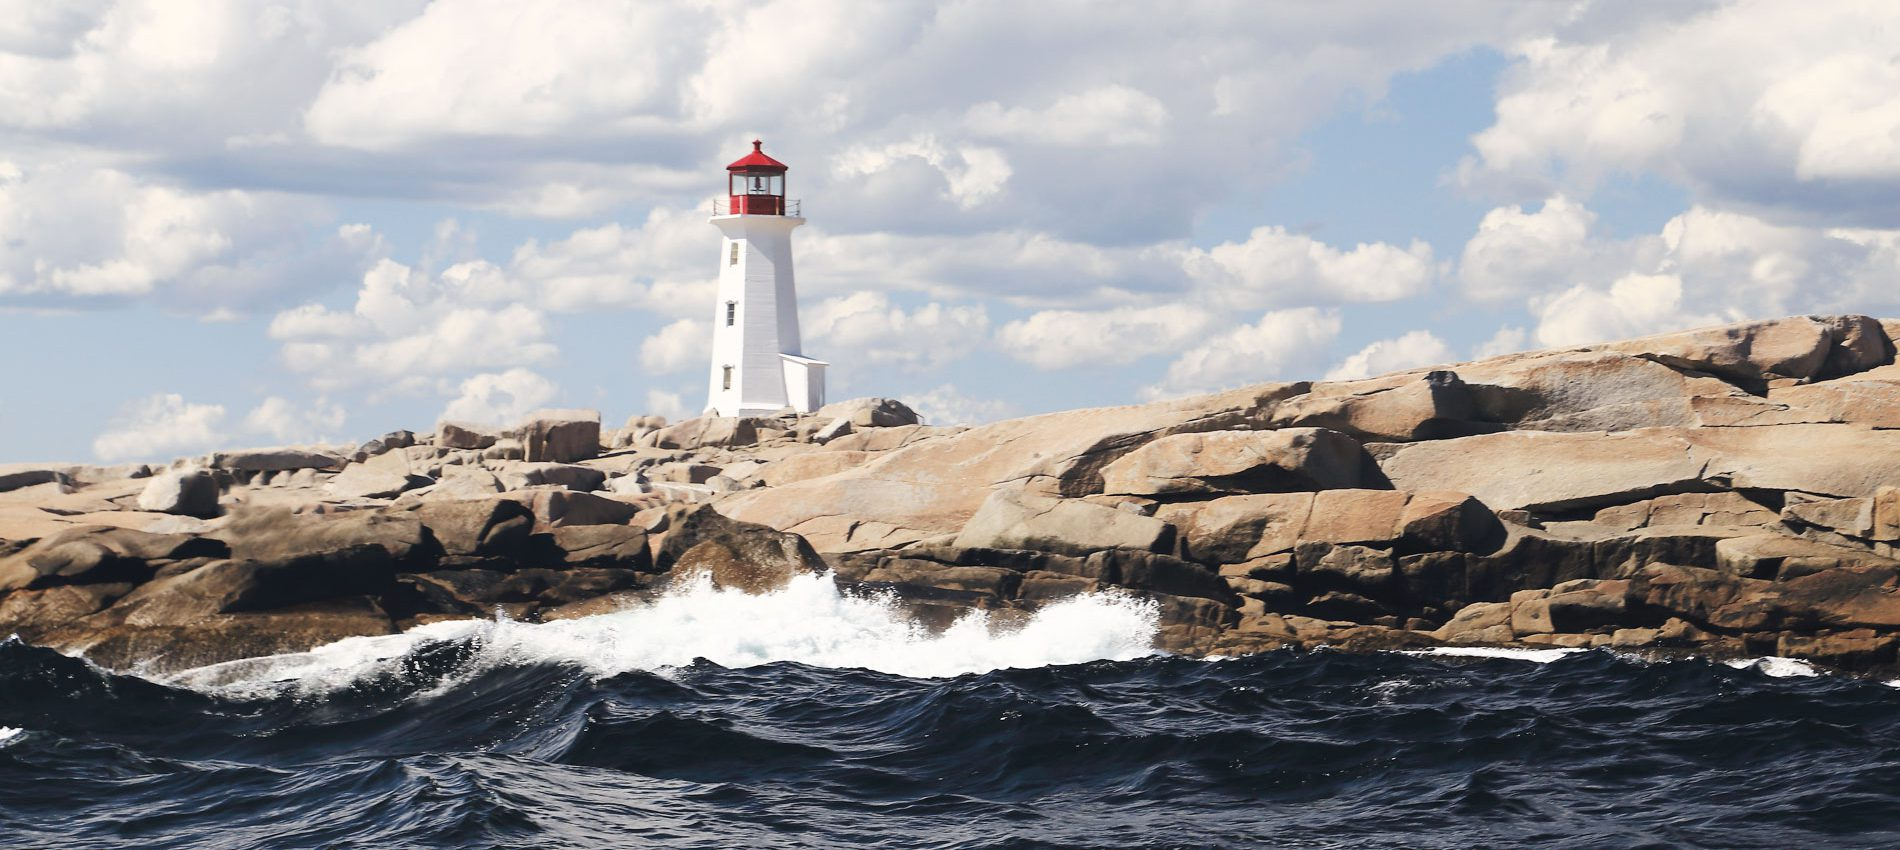 Canadian Staycation: 3 Summer Hot Spots - Everything Zoomer